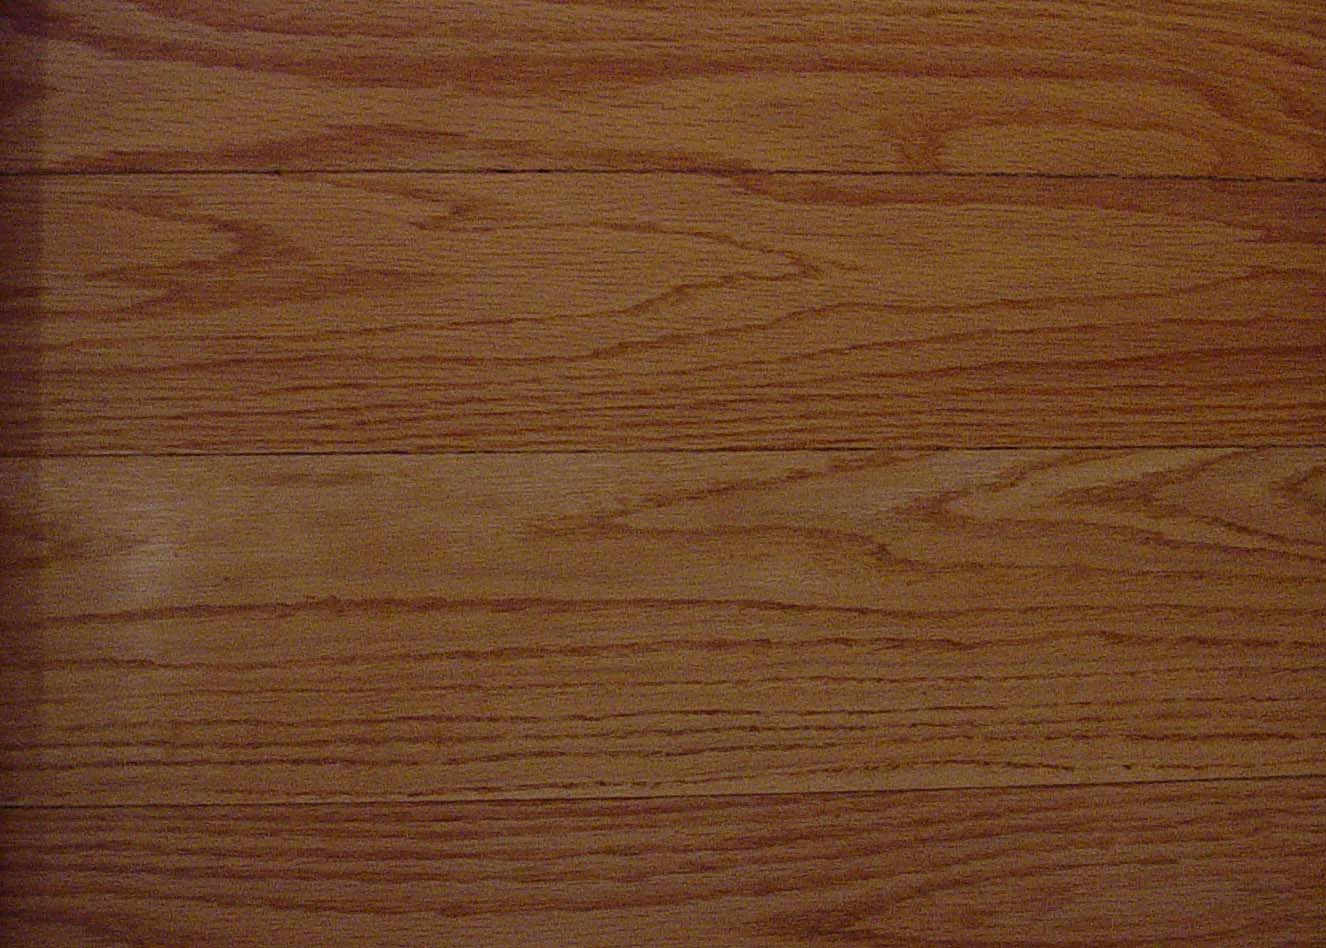 Golden oak satin finish select red oak oil base sealer for Wood floor finishes